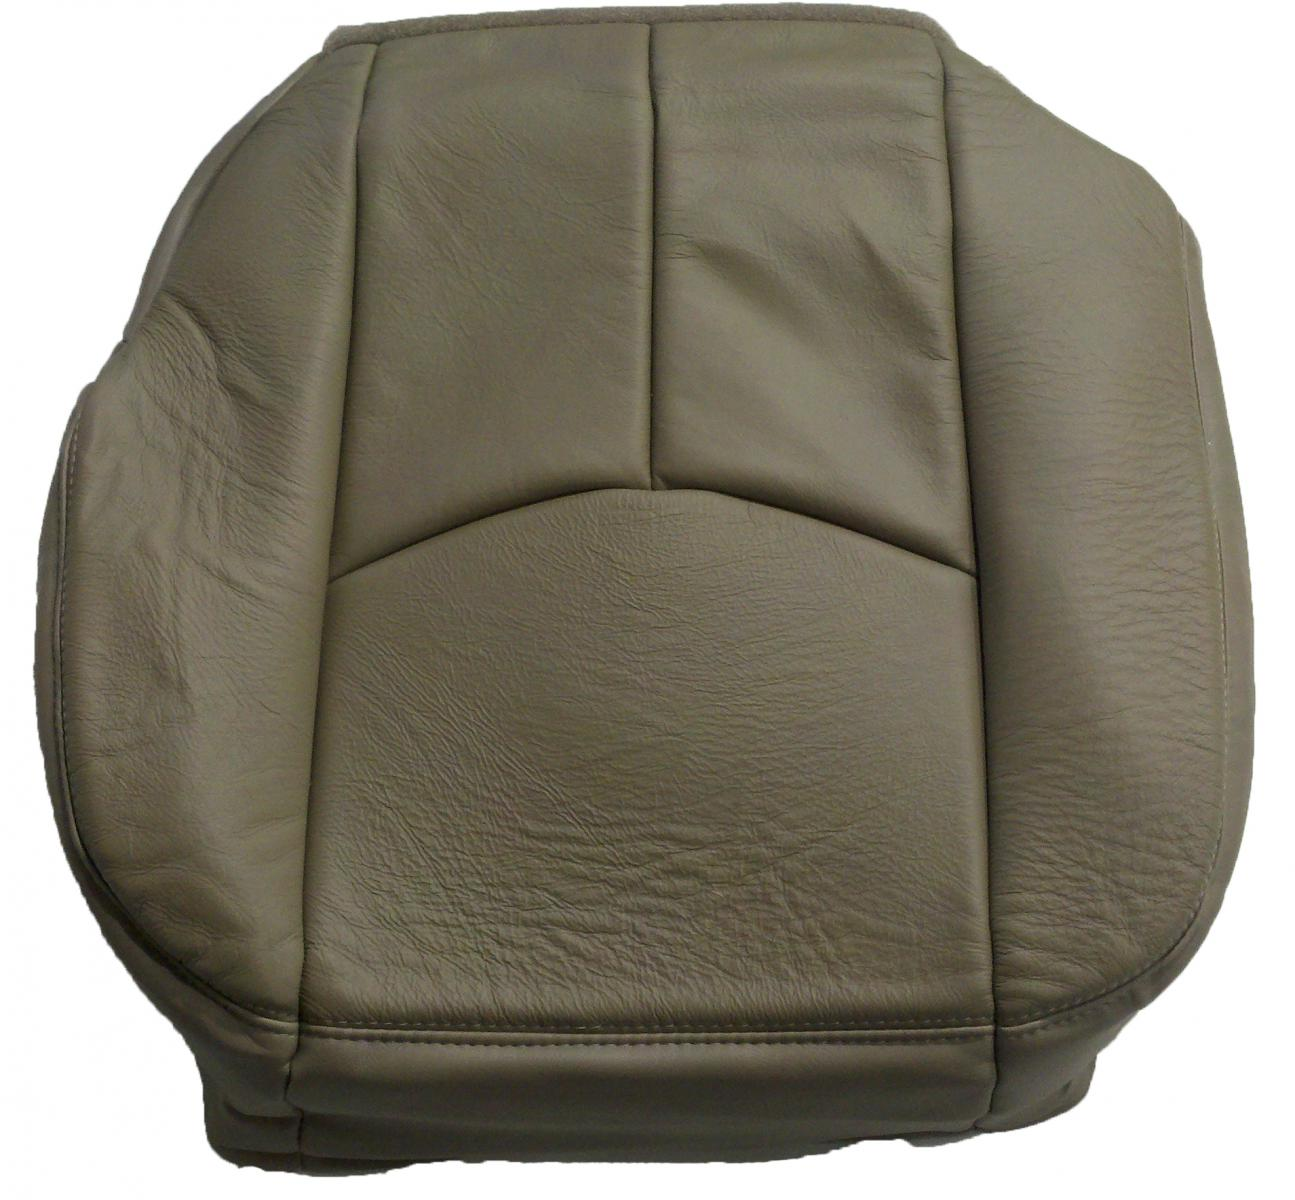 2003 2004 2005 2006 oem suburban silverado 1500 tahoe leather seat cover bottom ebay. Black Bedroom Furniture Sets. Home Design Ideas